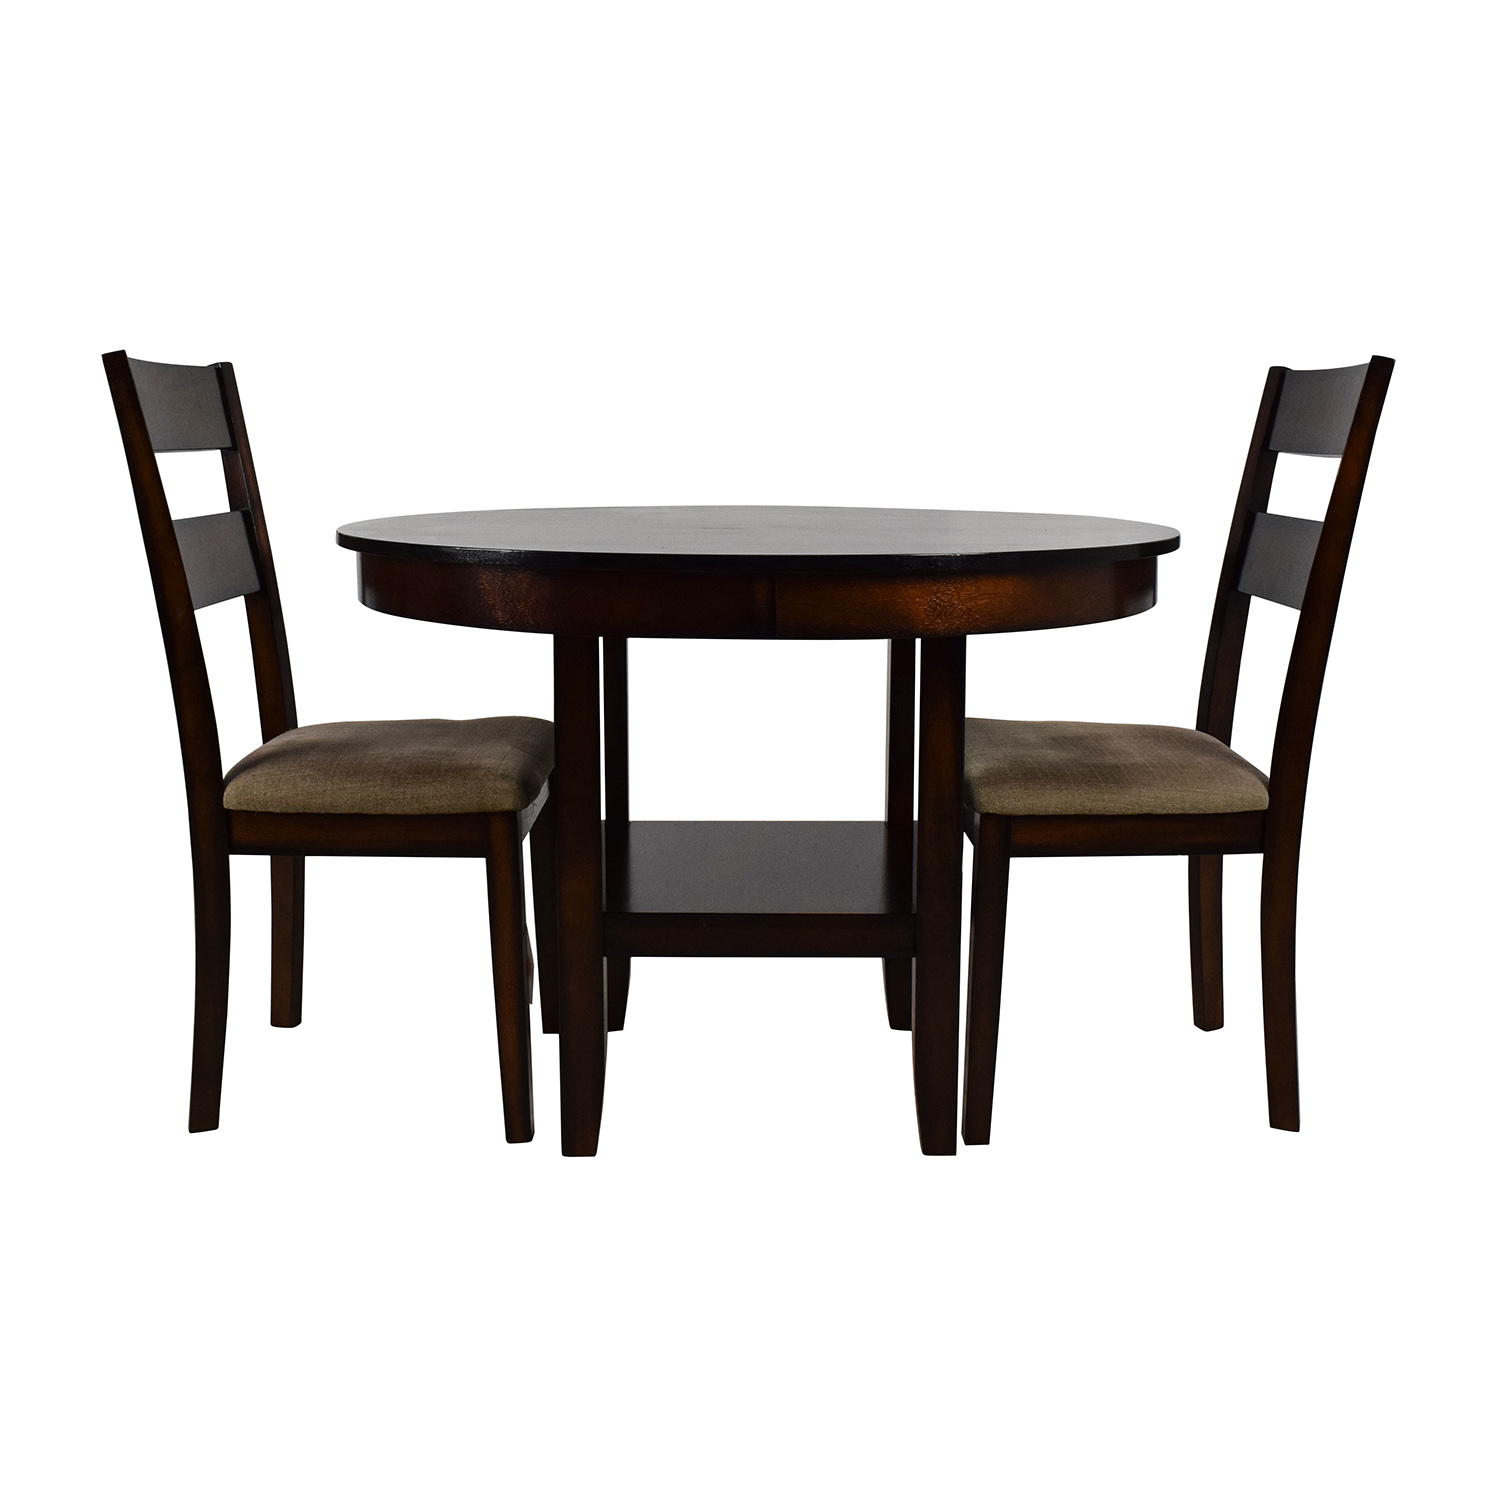 buy Macys Macys Branton 3-Piece Dining Room Collection online